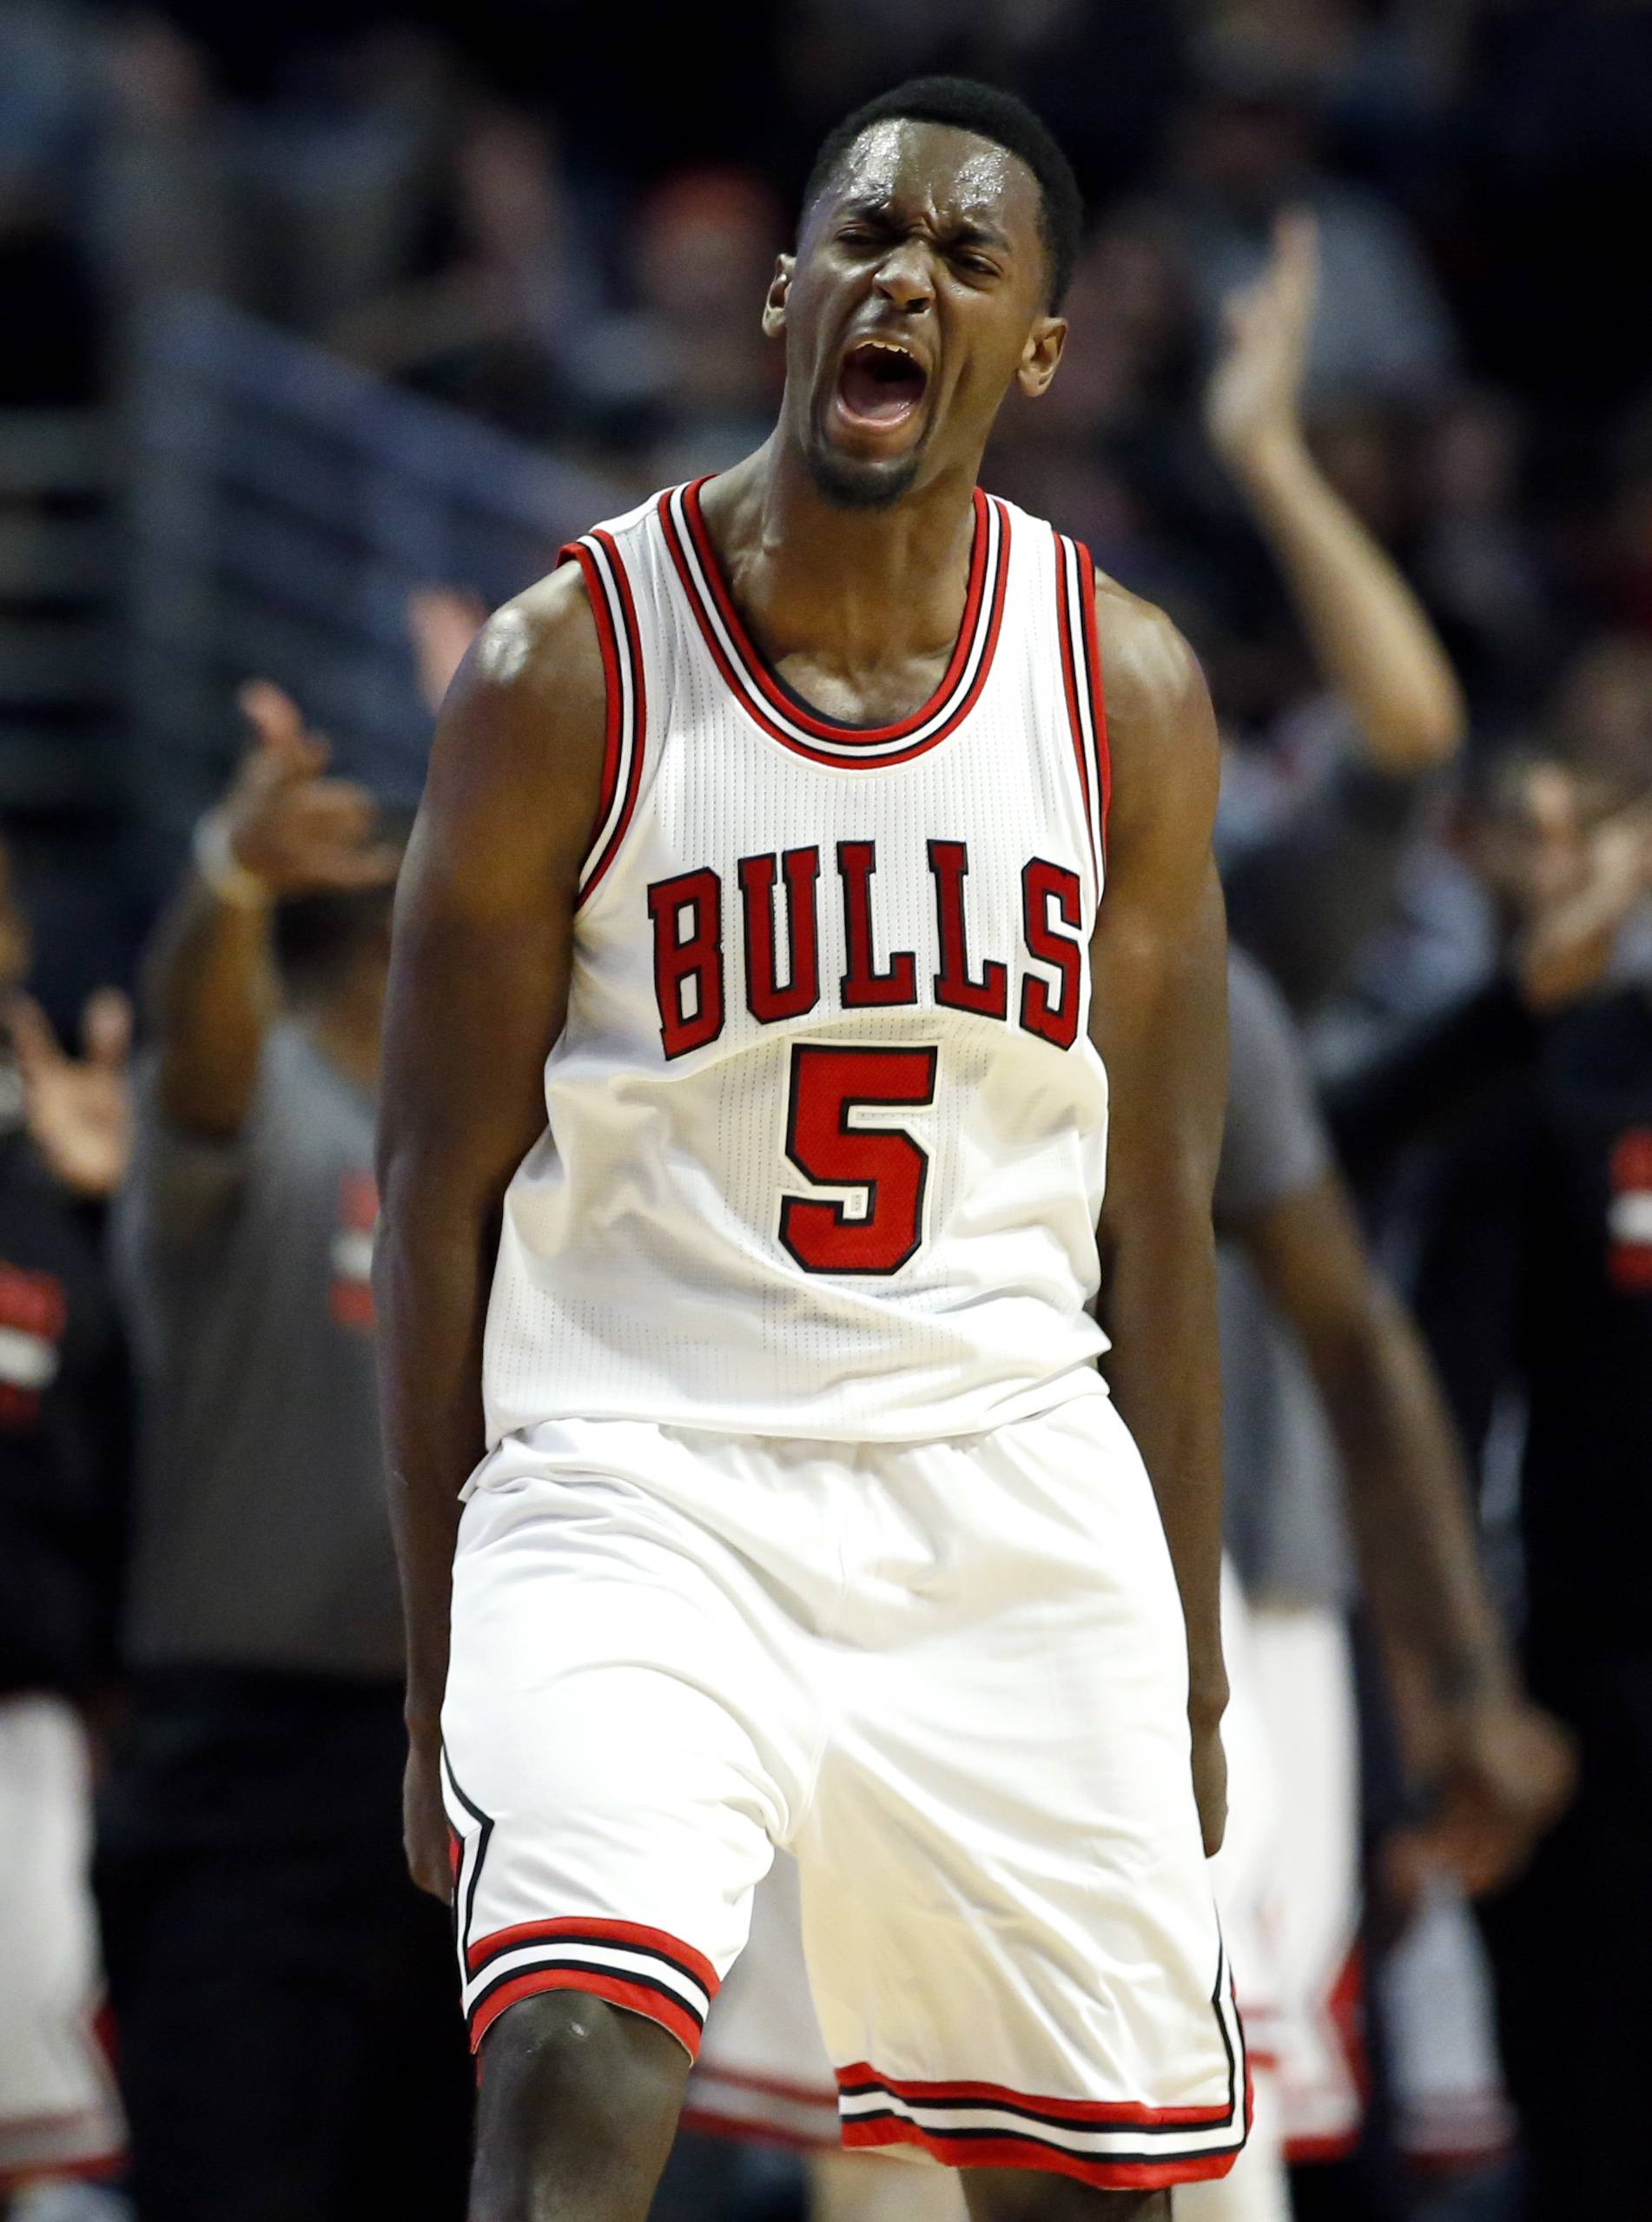 Bulls forward Nikola Mirotic was taken to the hospital Tuesday after a practice altercation with teammate Bobby Portis. According to a team source, Portis punched Mirotic in the face, resulting in facial fractures and a concussion.